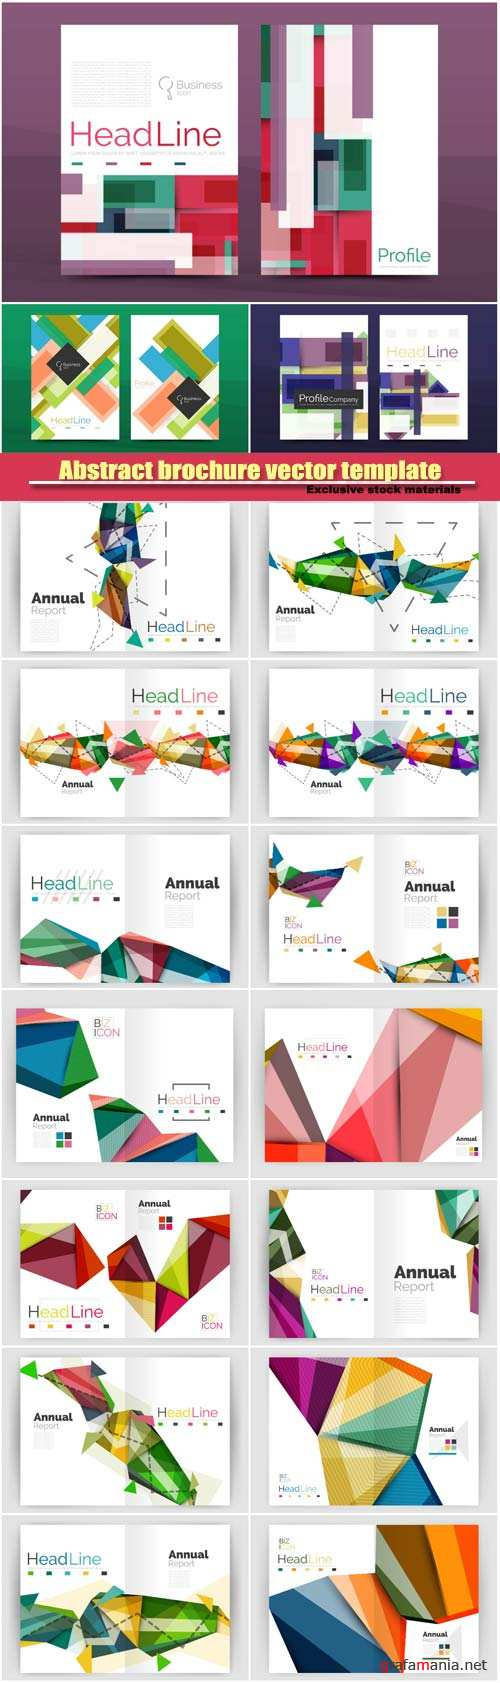 Abstract vector geometric design business brochure cover